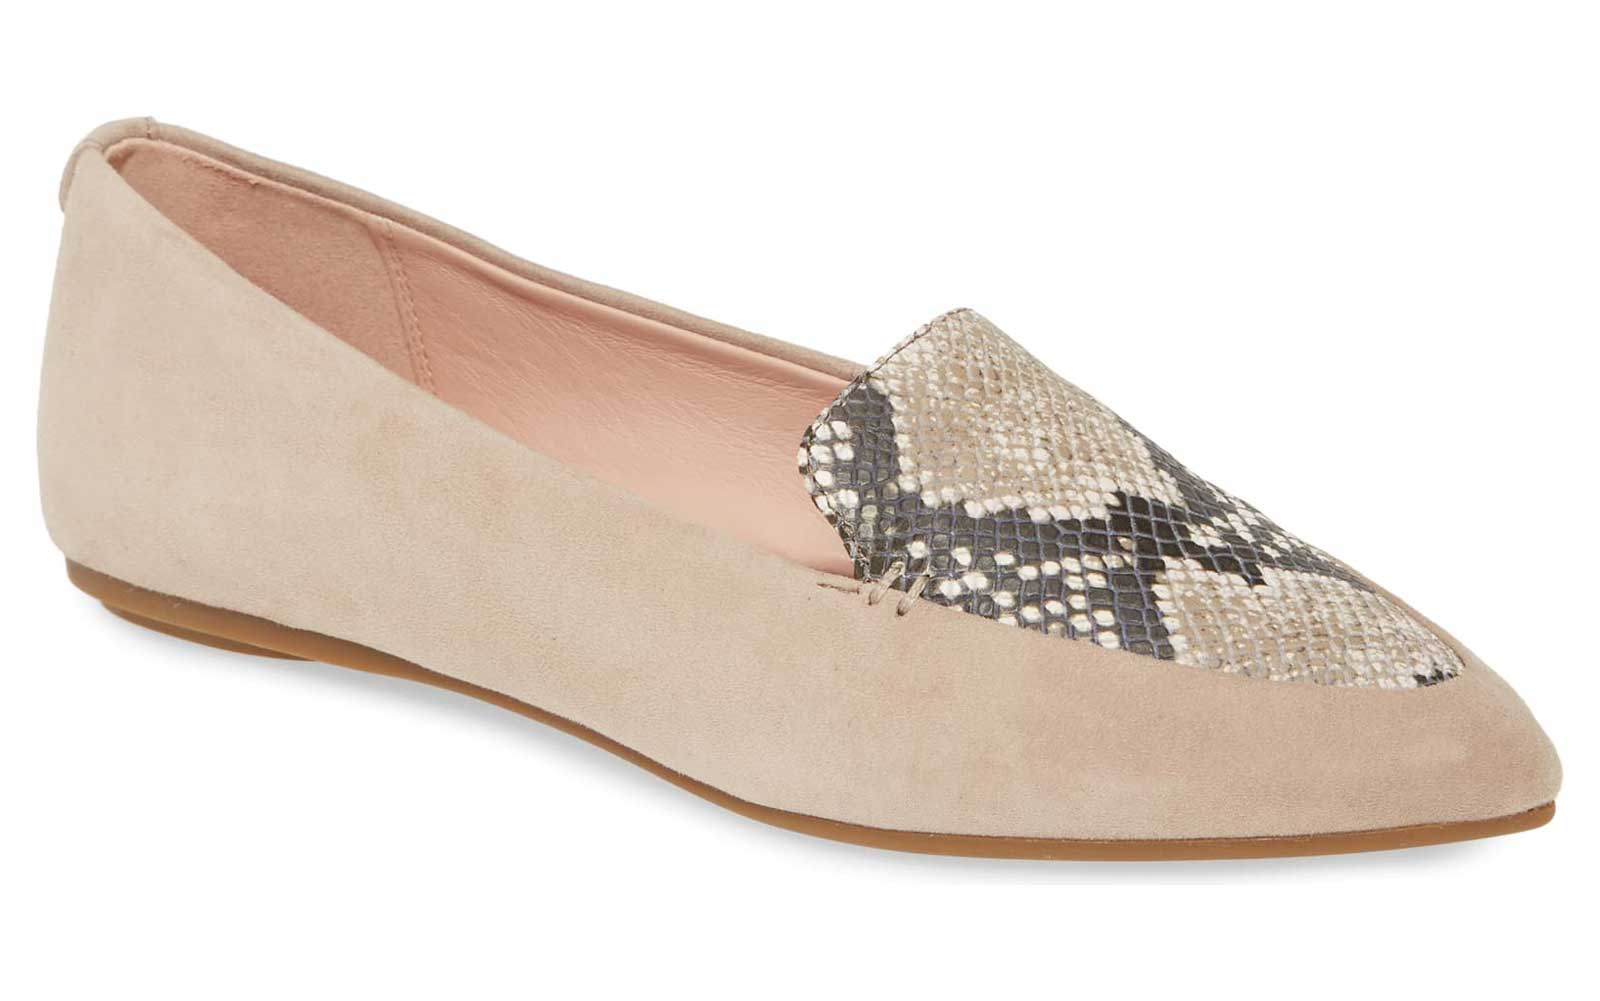 Tan and Snakeskin-print Pointed Toe Loafers for Women